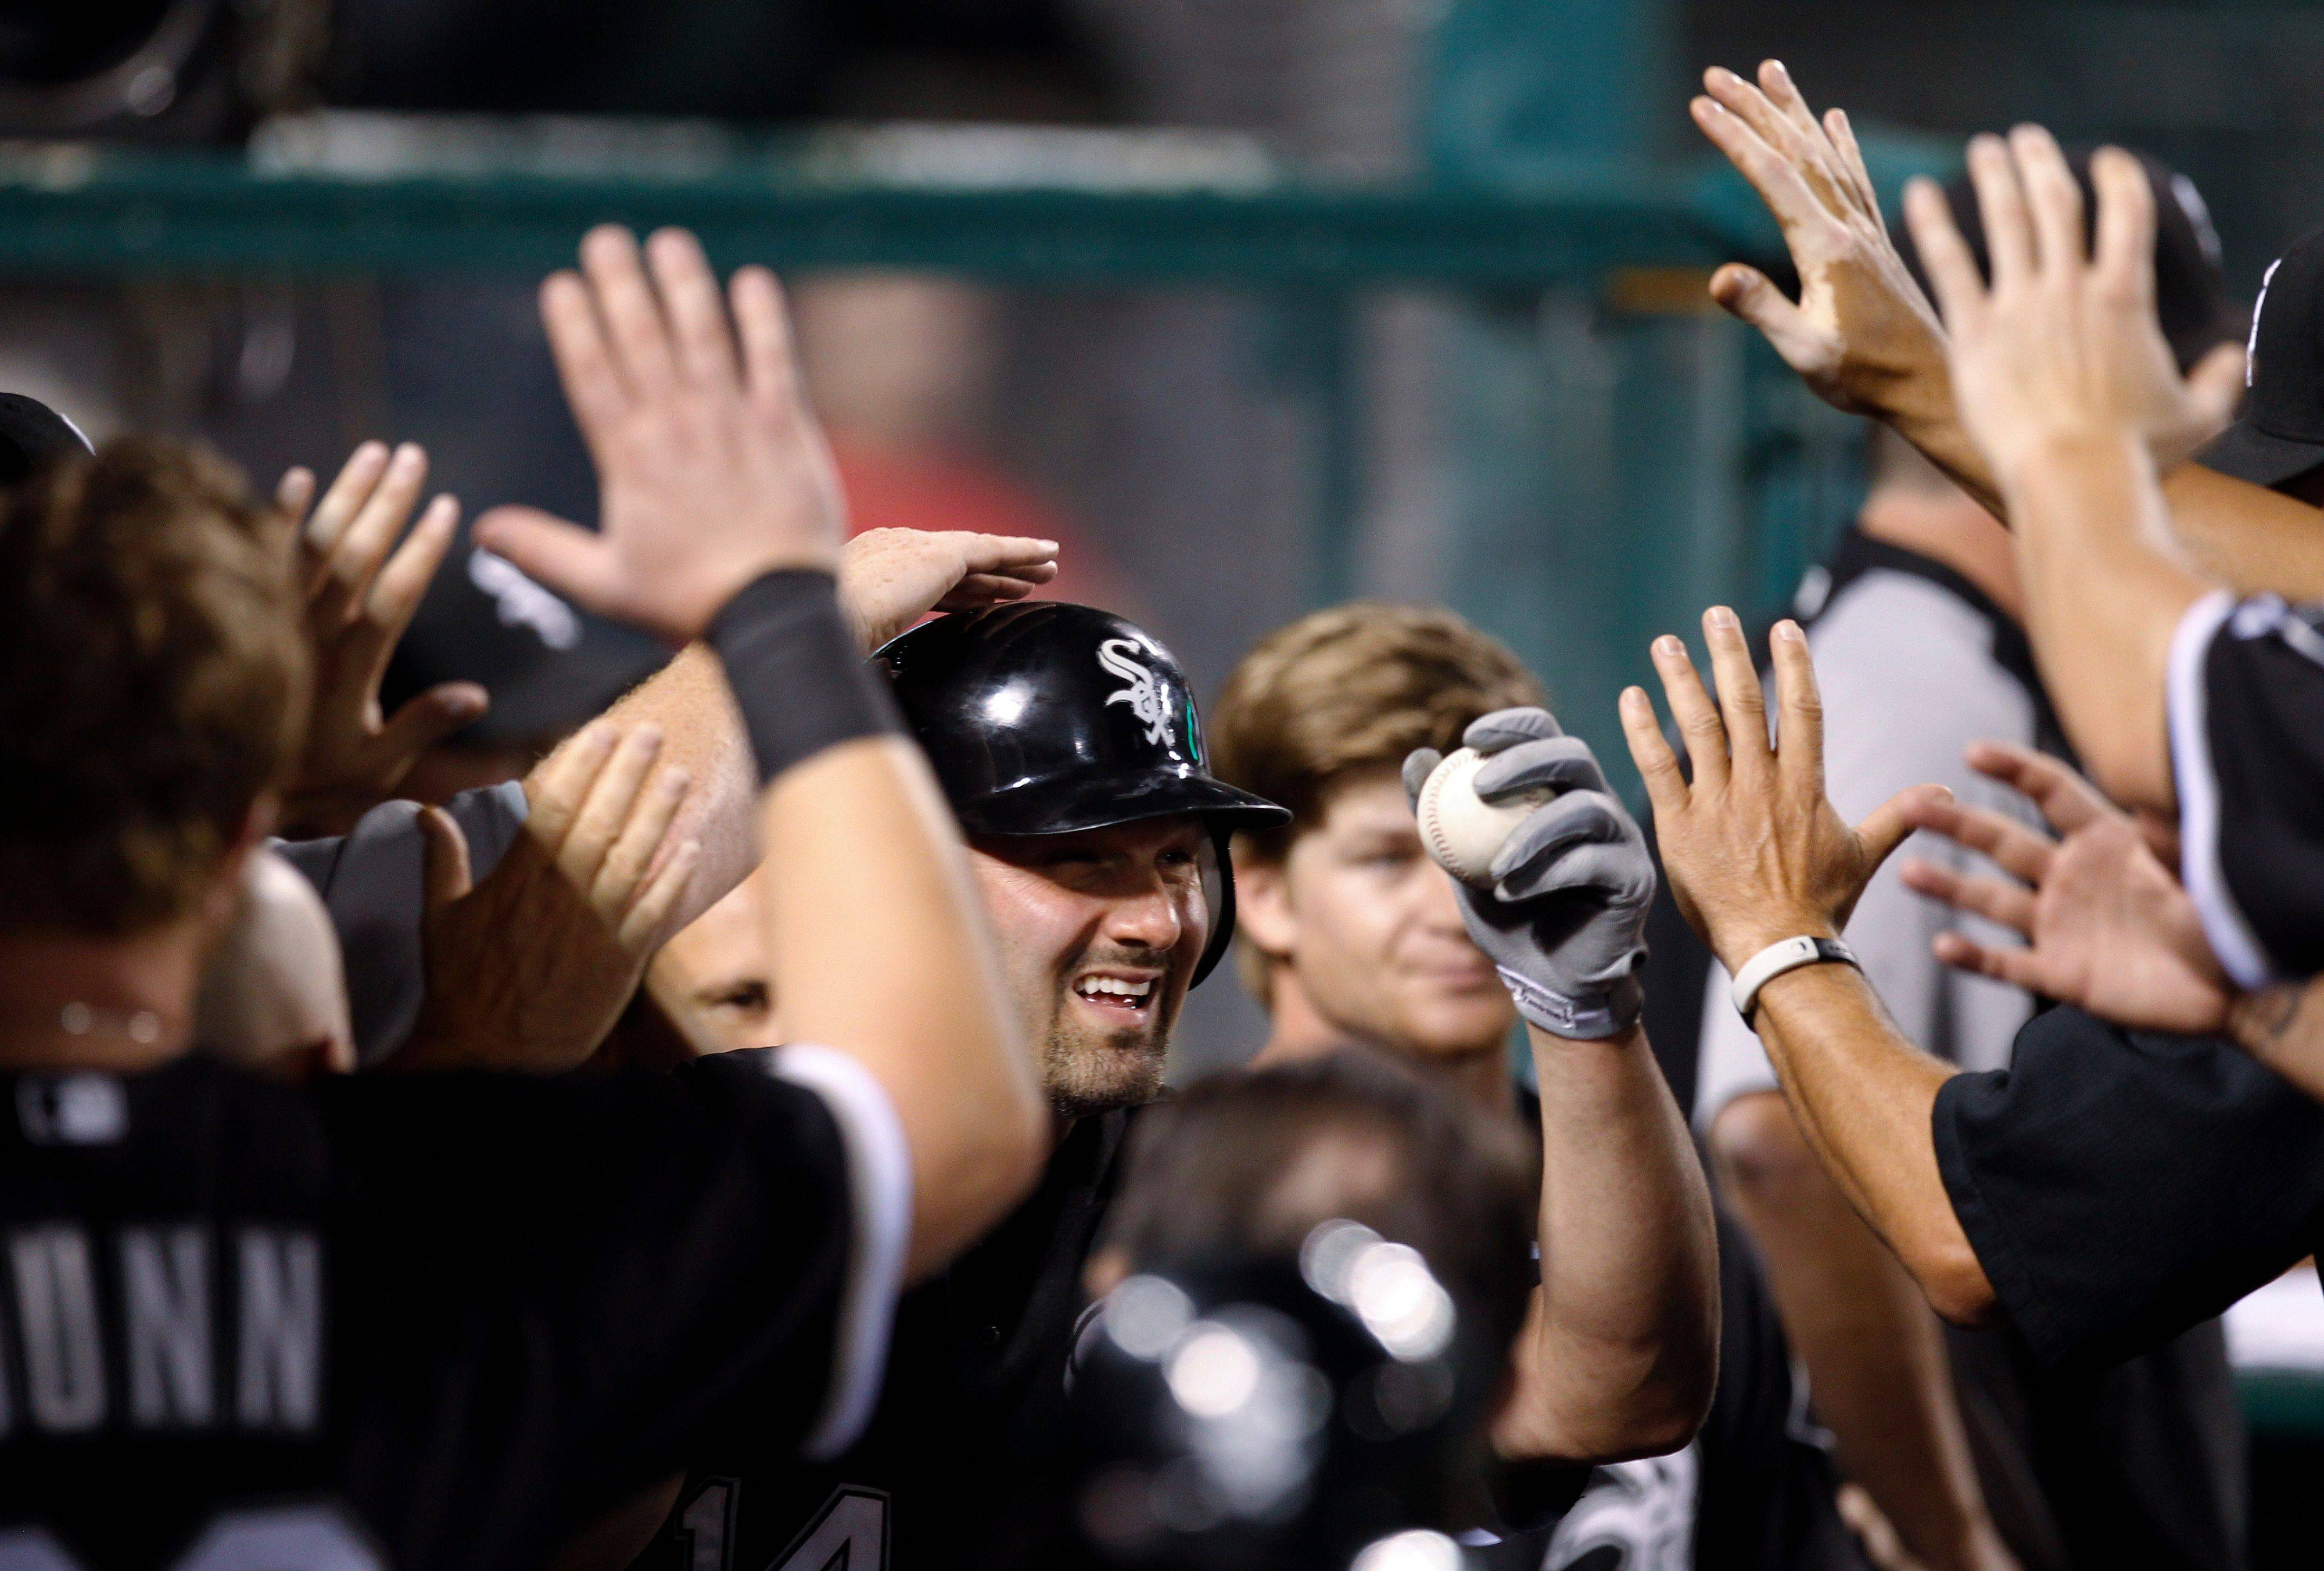 Paul Konerko is greeted in the dugout after his 2,000th career hit during Tuesday night's game. The White Sox lost 5-4.